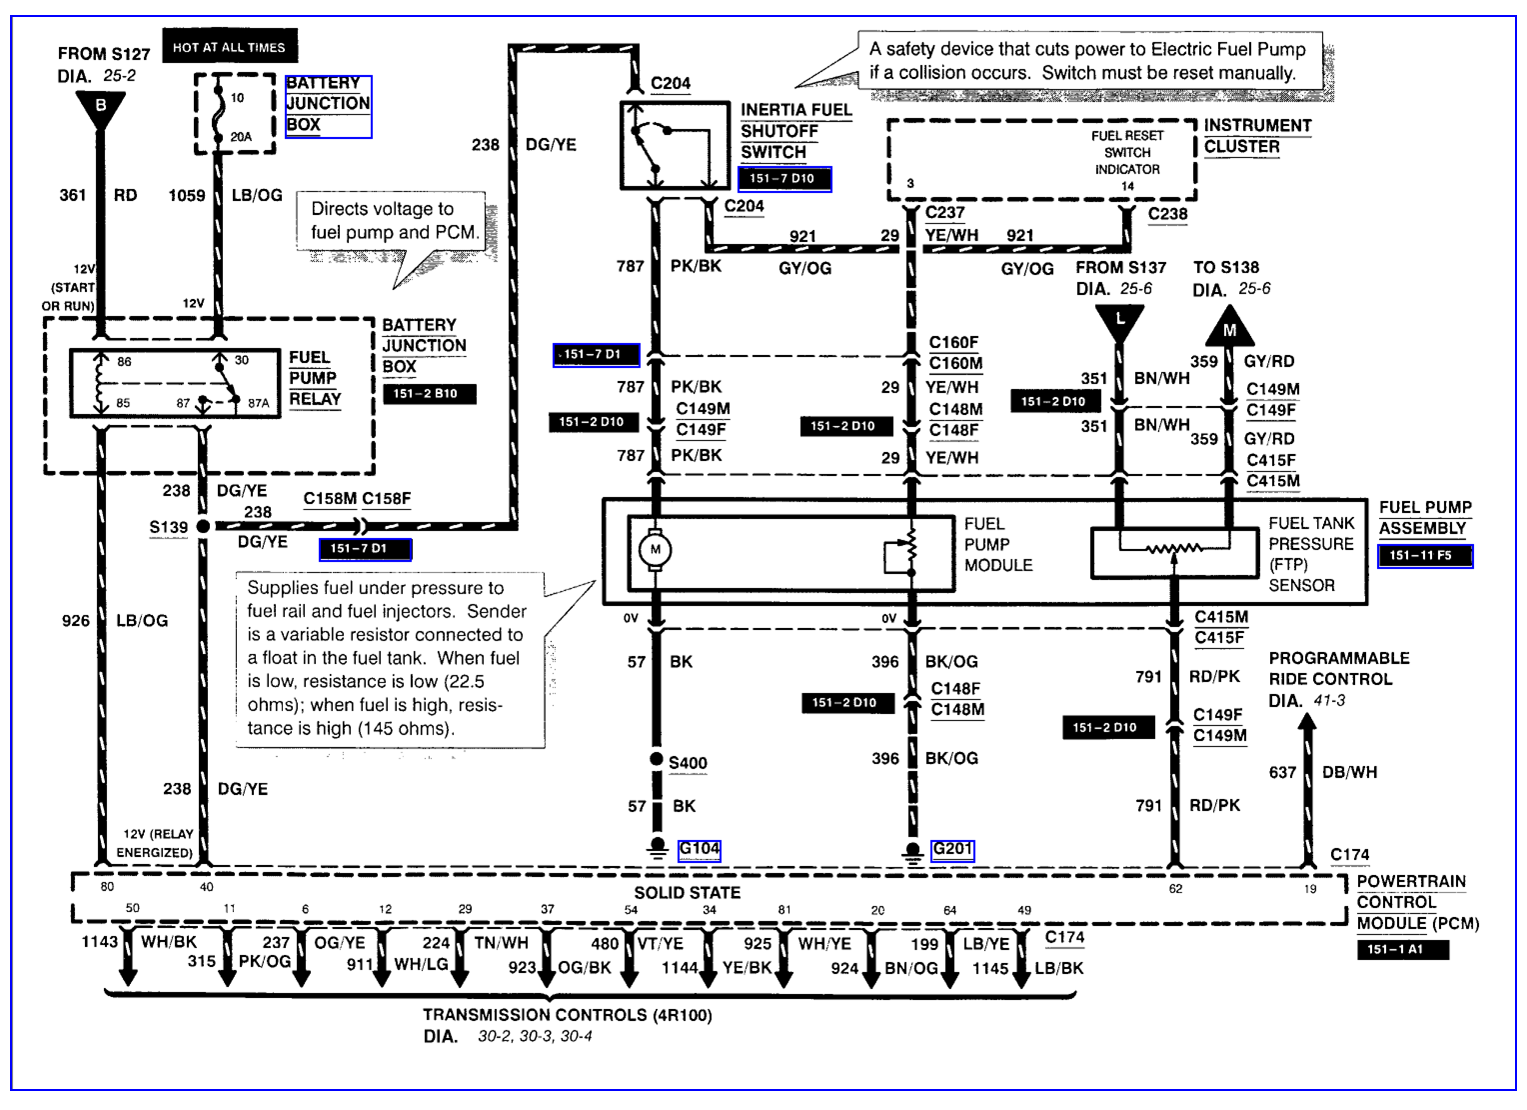 1997 ford expedition wiring diagram oo 7727  wiring for 2003 ford expedition 4x4  wiring for 2003 ford expedition 4x4